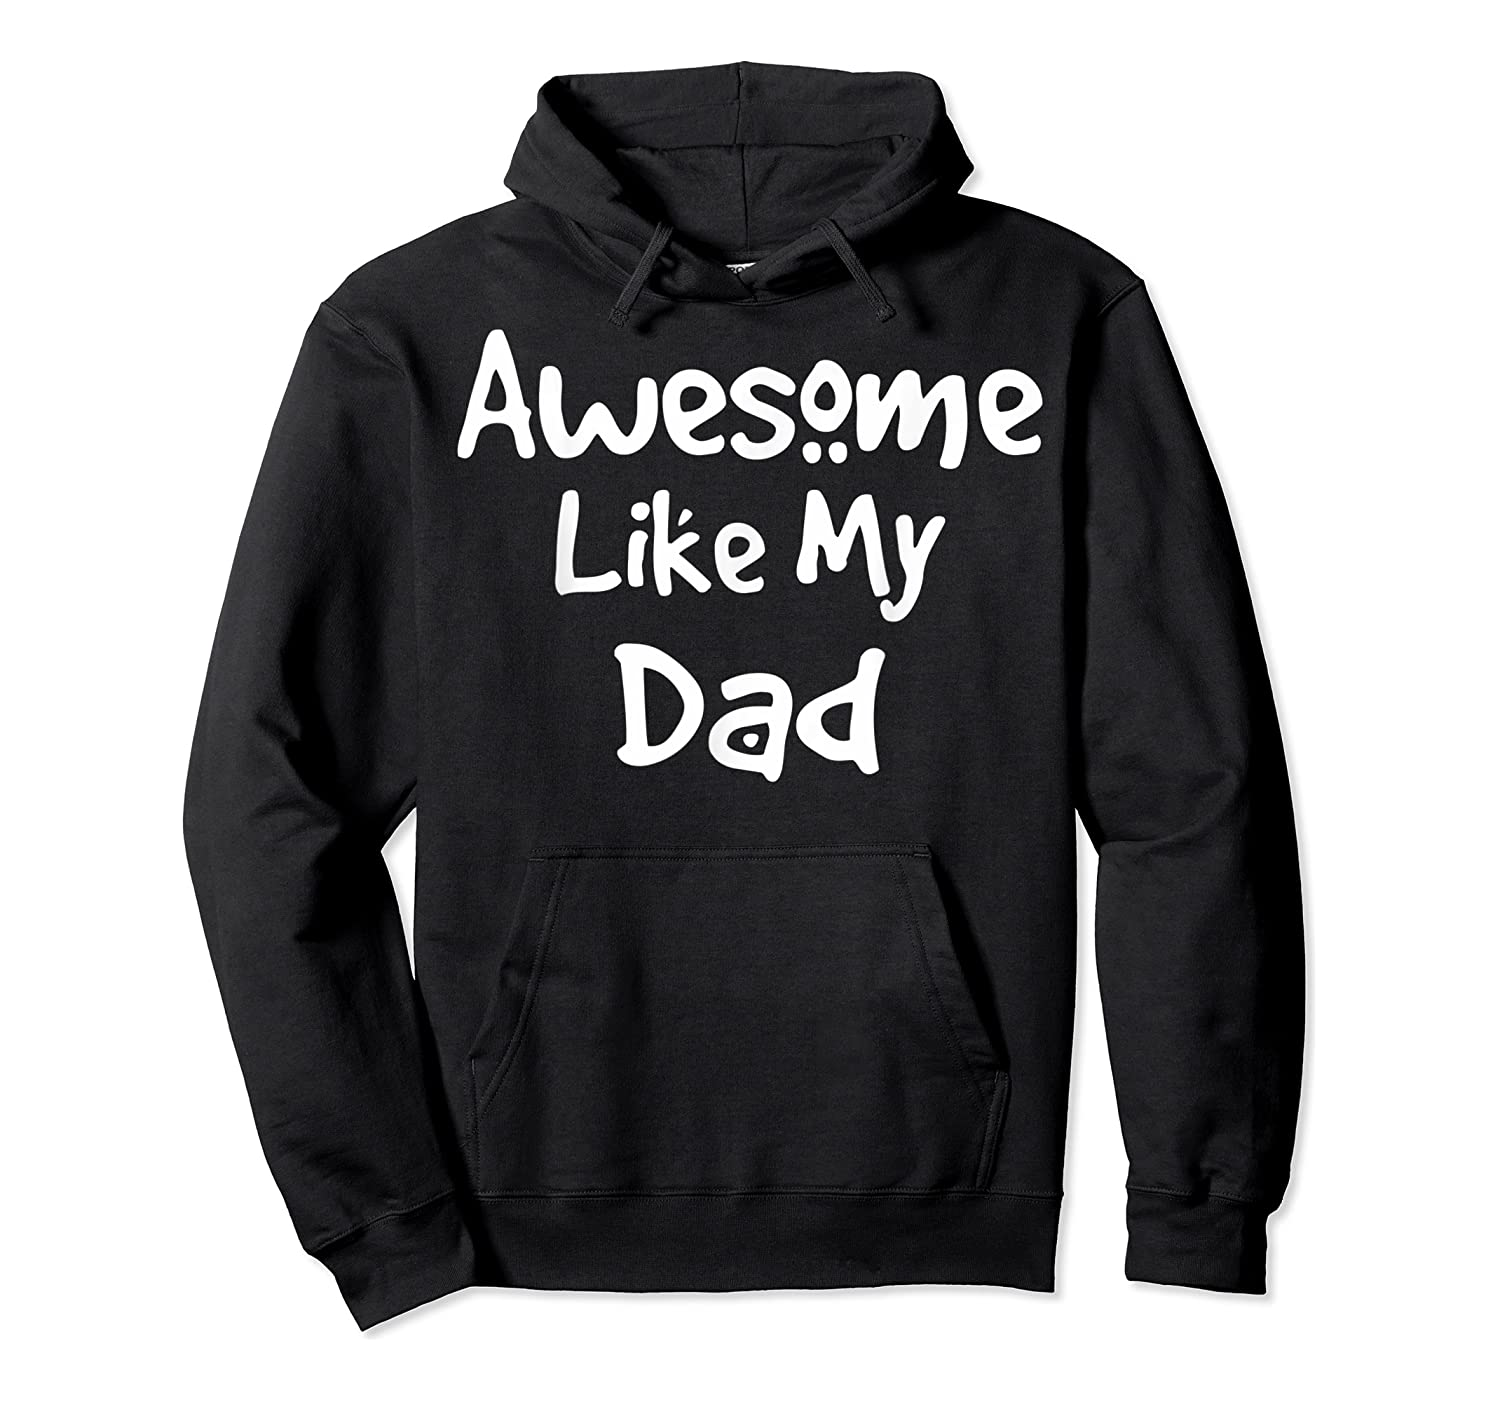 Awesome Like My Dad Happy Fathers Day Shirts Unisex Pullover Hoodie